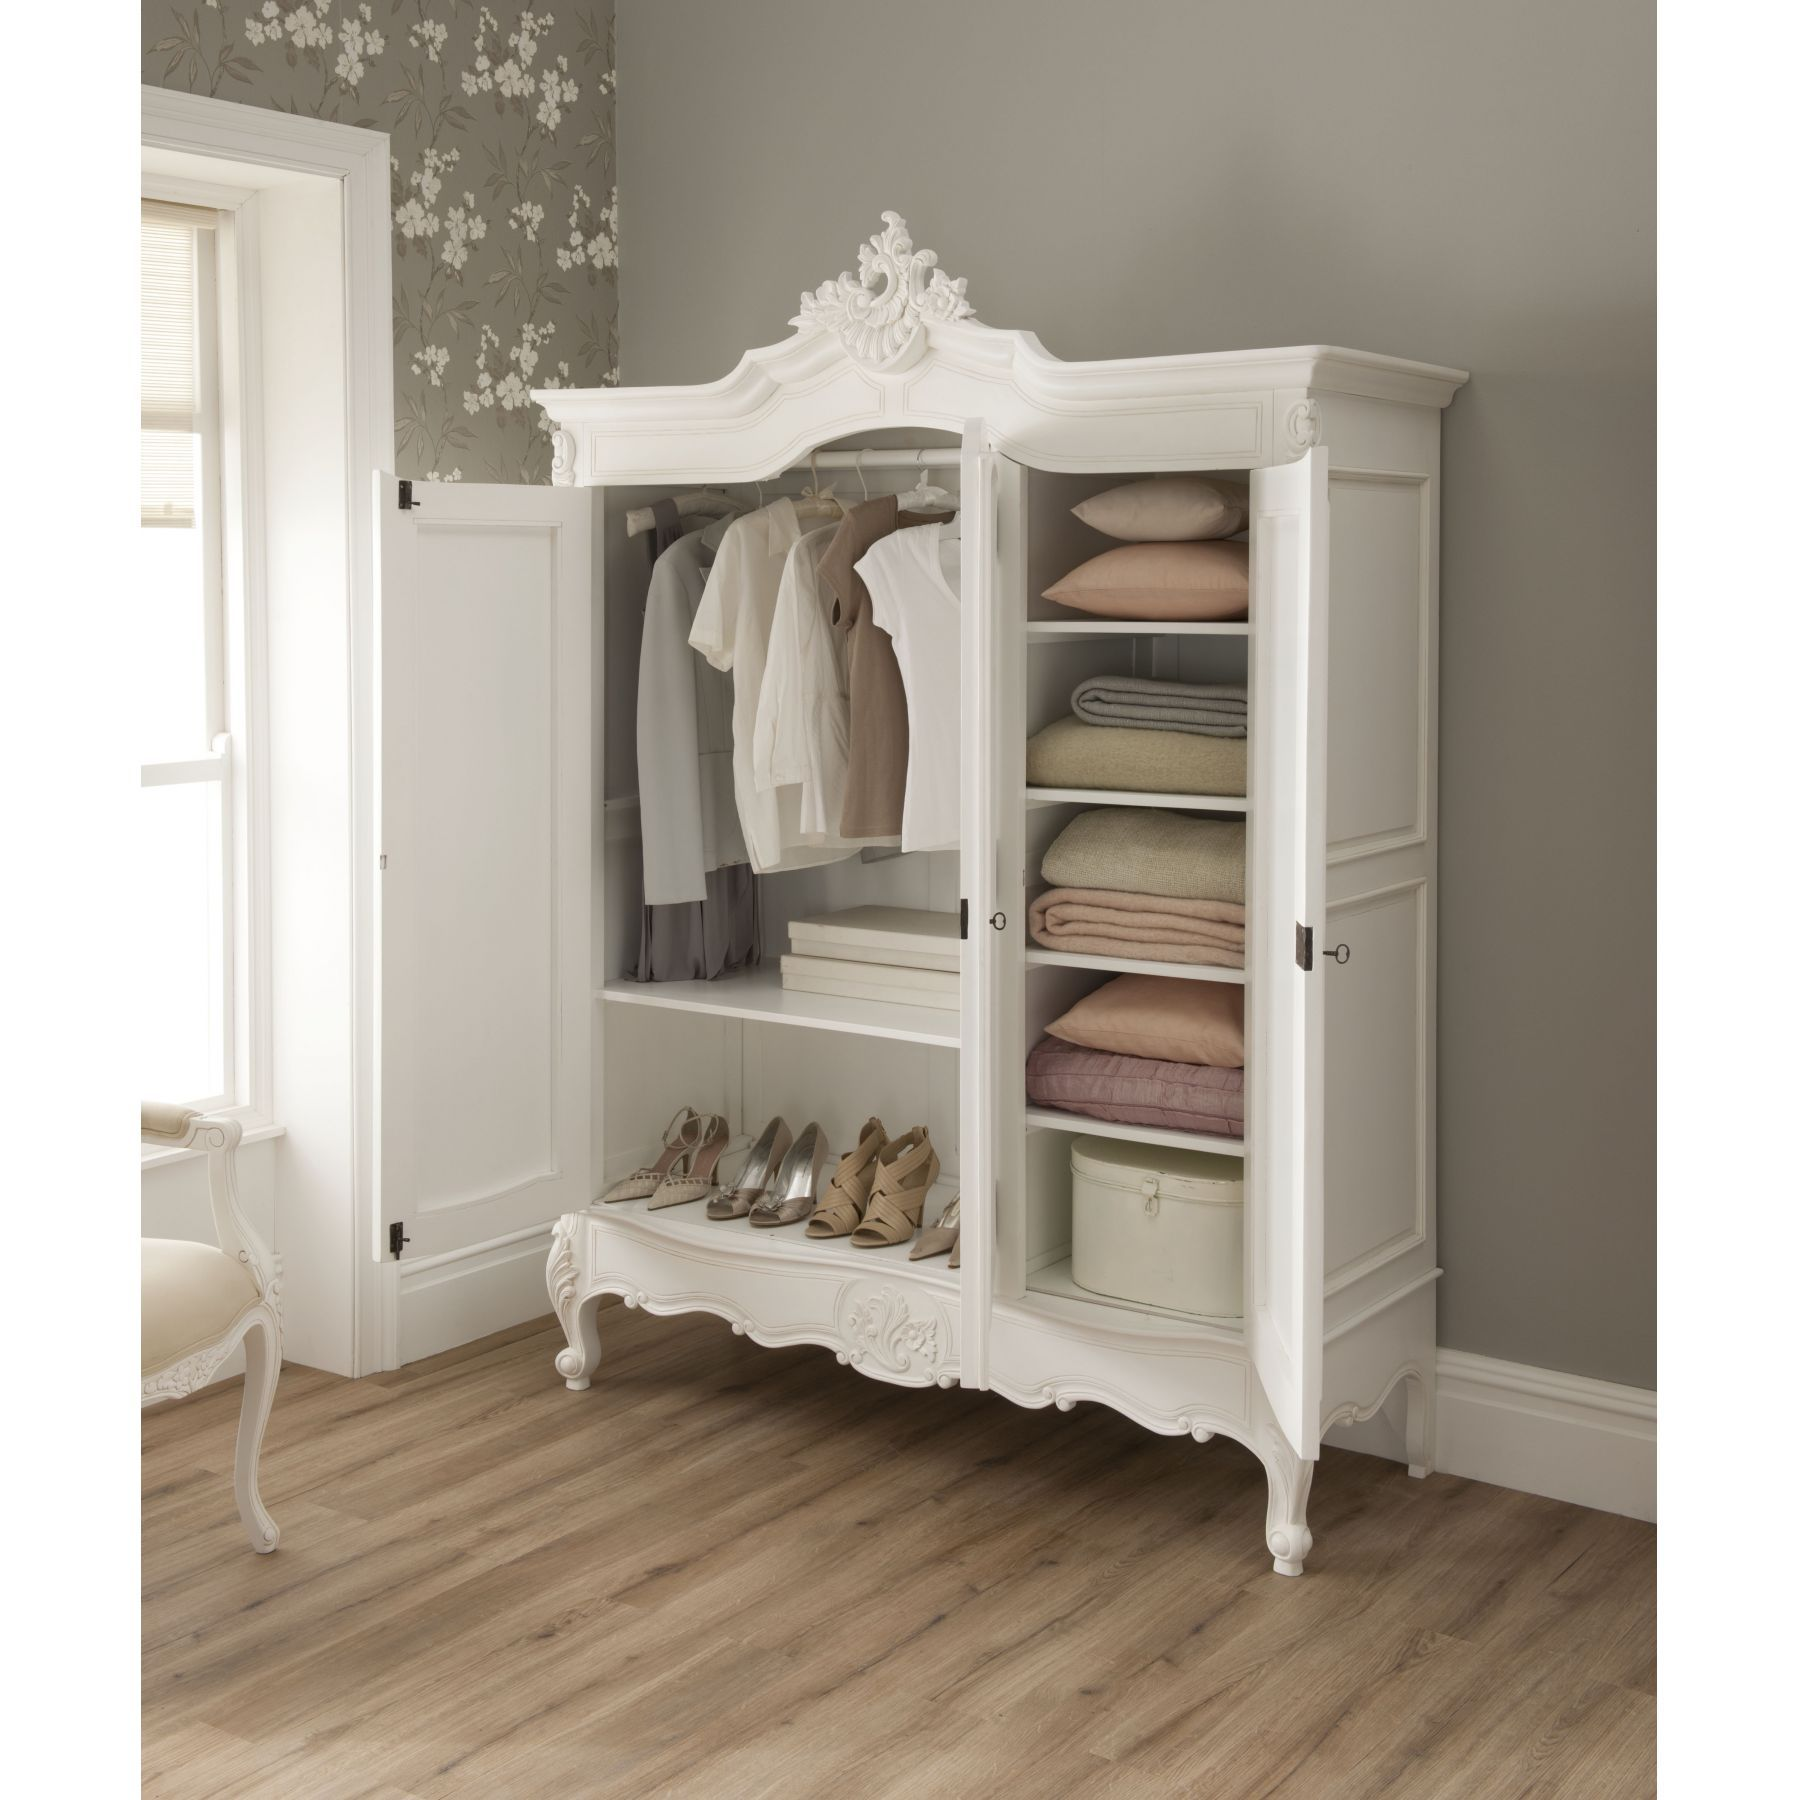 A Wardrobe Is The Perfect Addition To A Baby's Room To